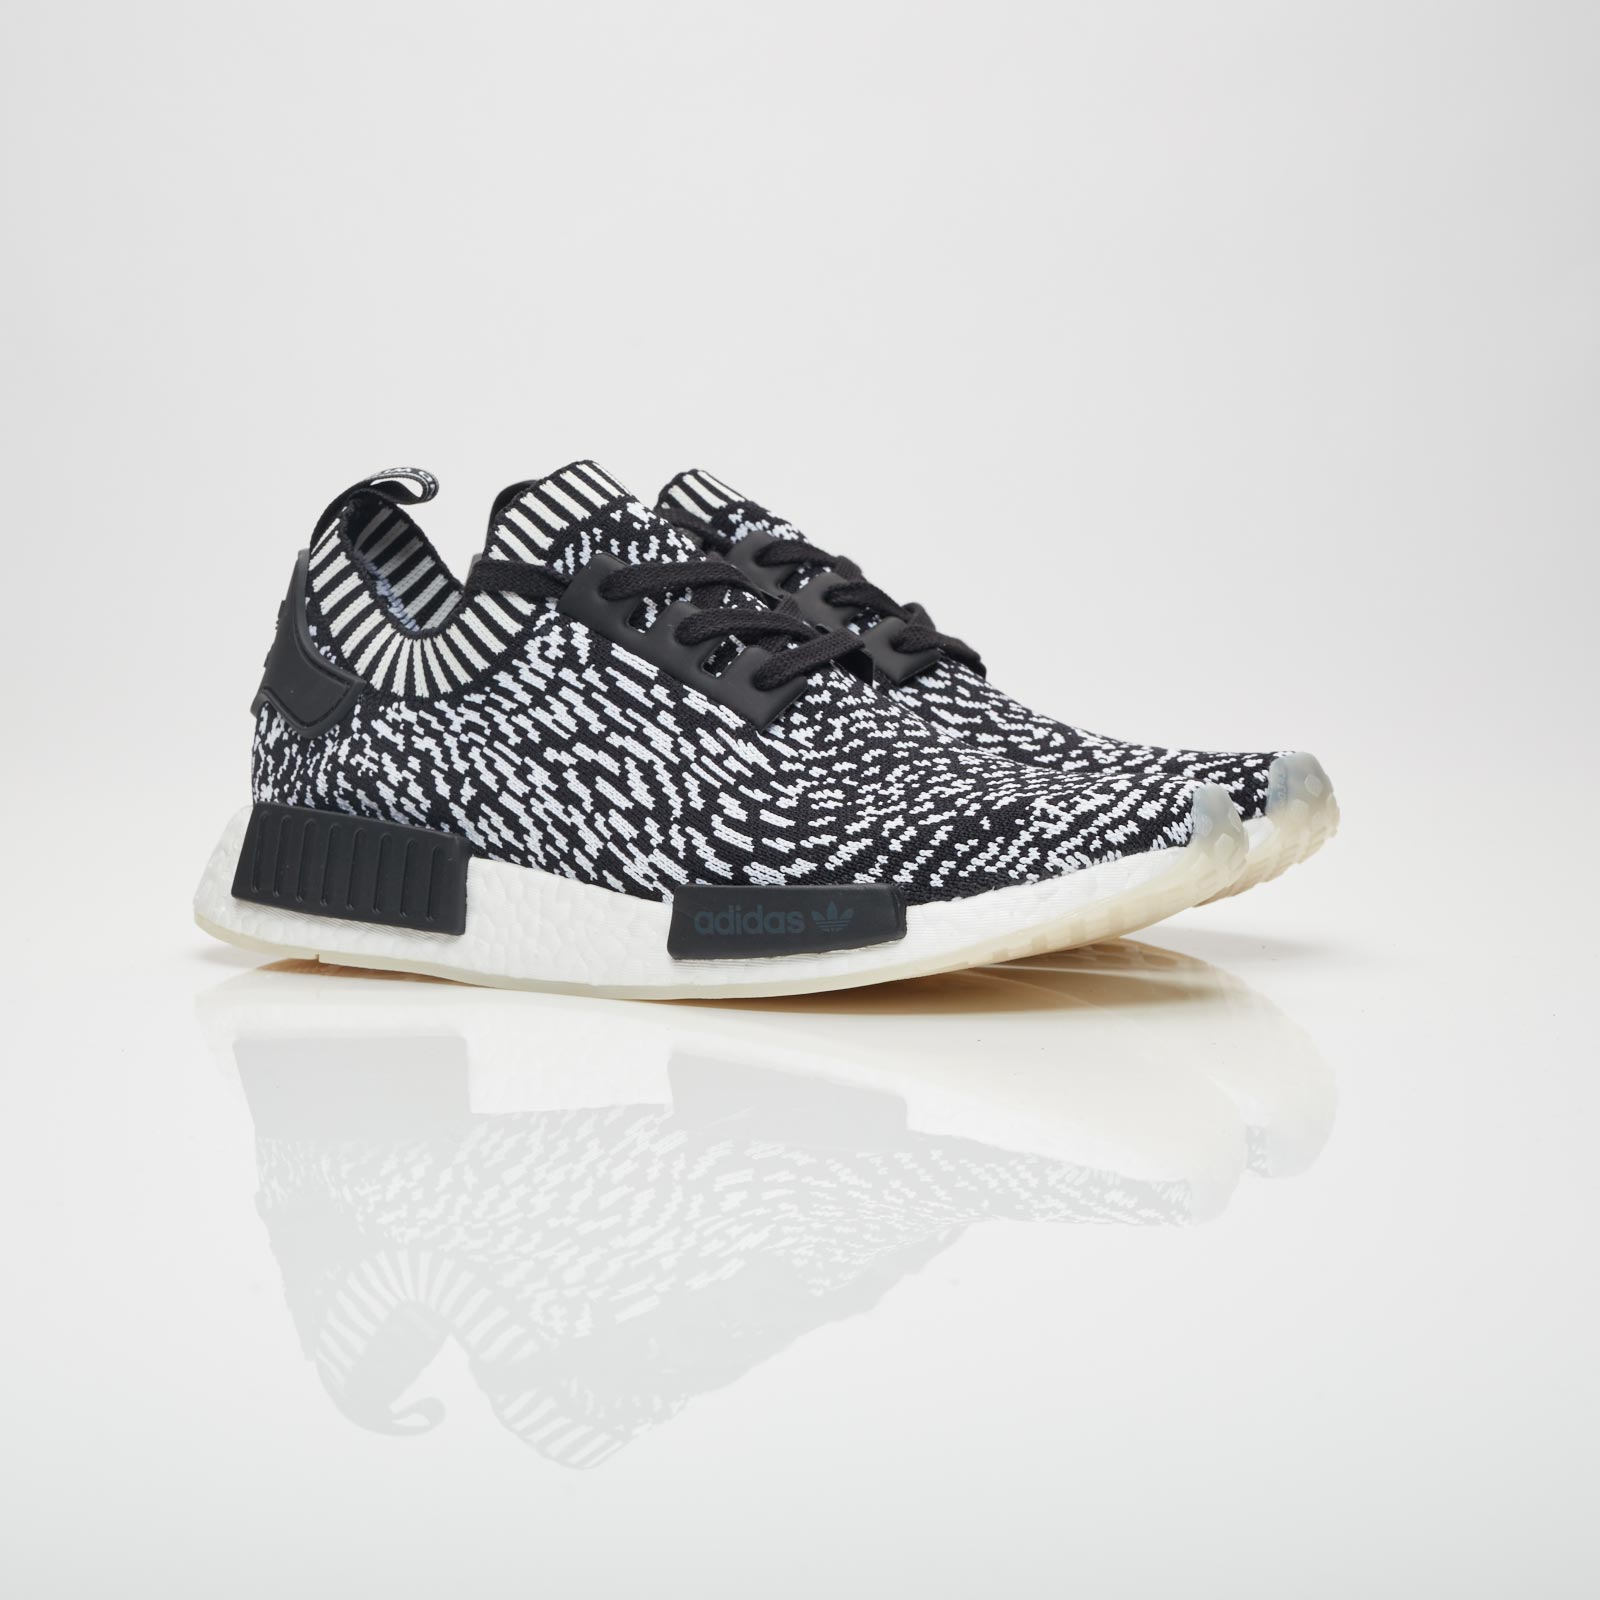 outlet store 051a9 b038e adidas NMD R1 PK - By3013 - Sneakersnstuff | sneakers ...